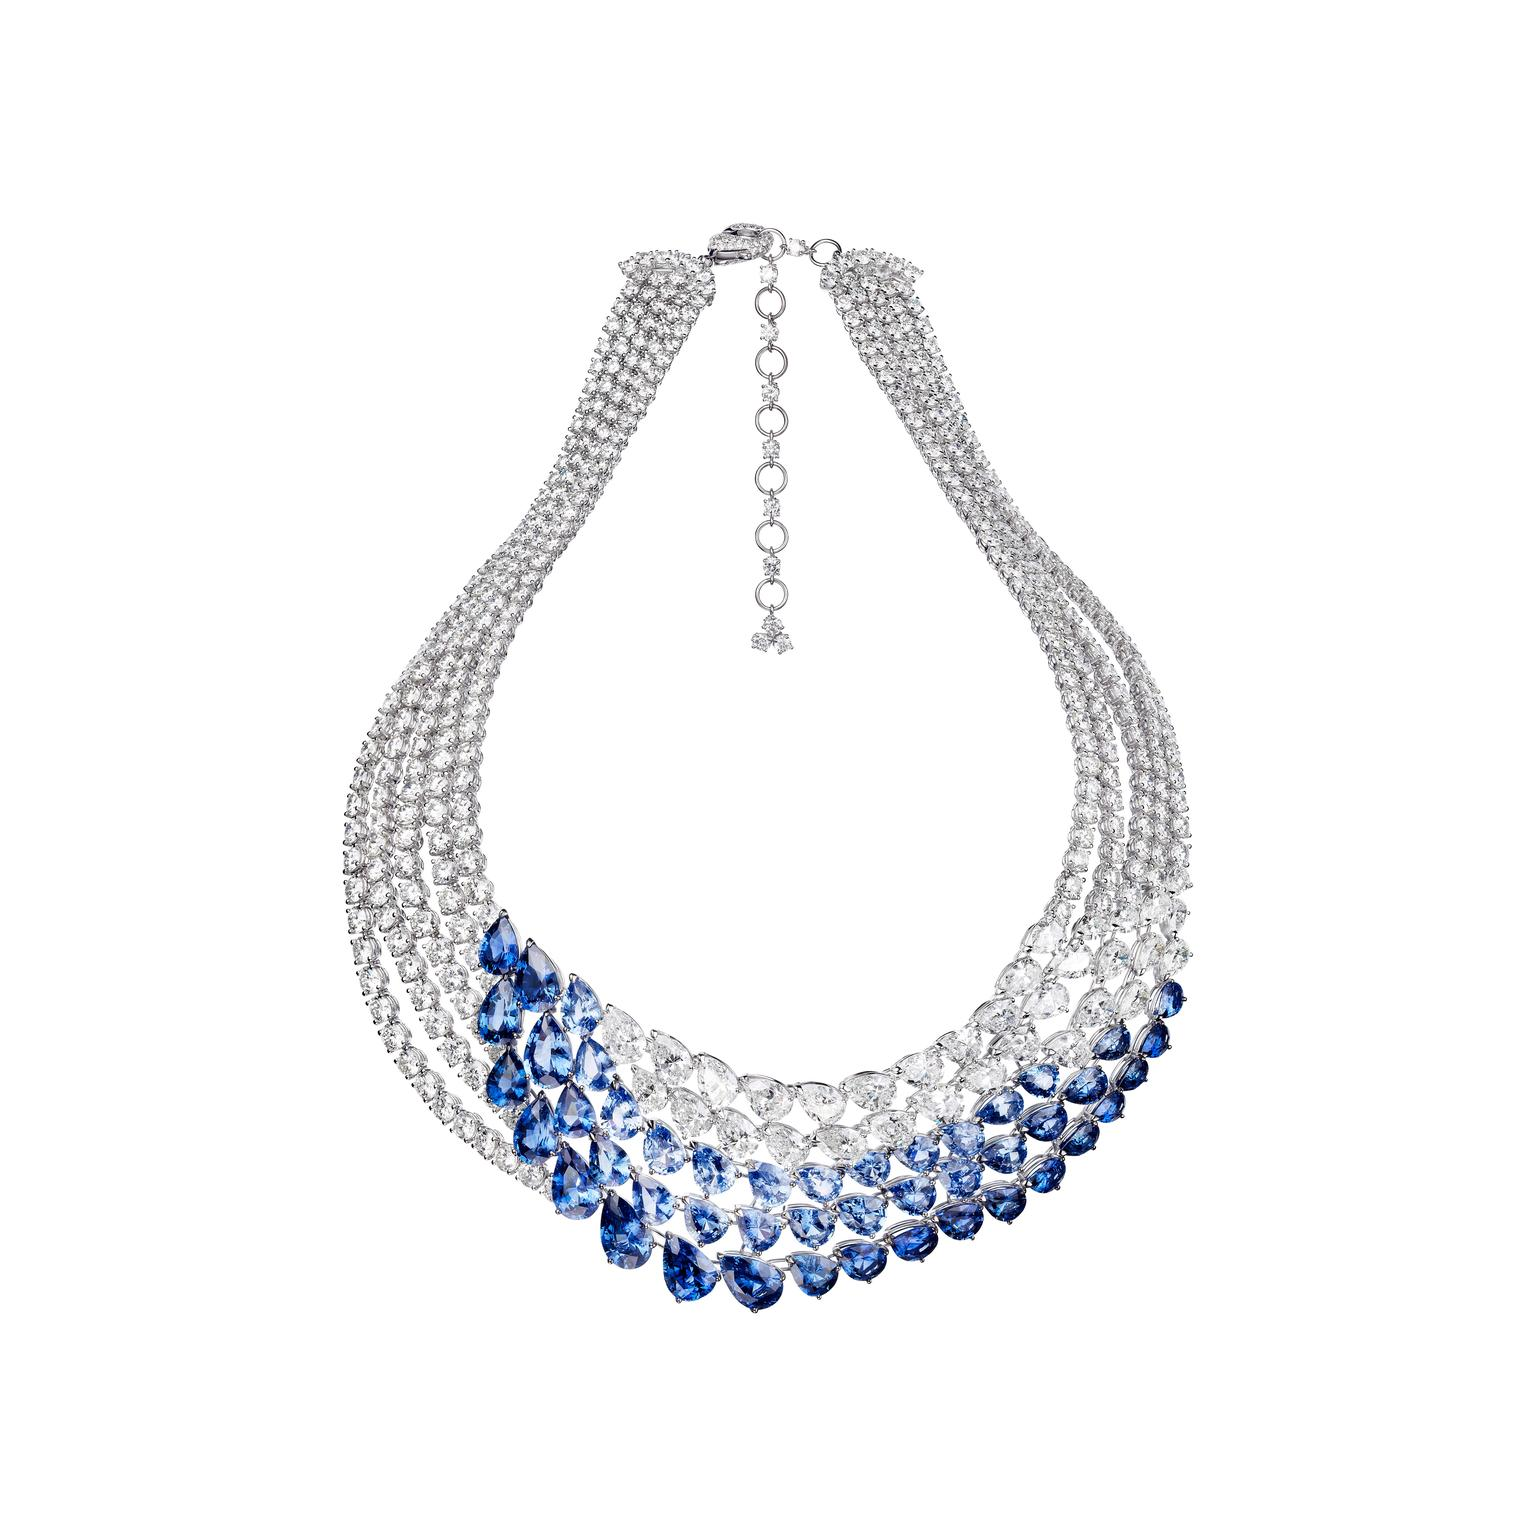 The new Adler high jewellery L'Oiseau Bleu necklace is set with 46 pear-shaped sapphires totalling more than 60ct in different tones of blue, which caress the neck along with a cascade of white diamonds.